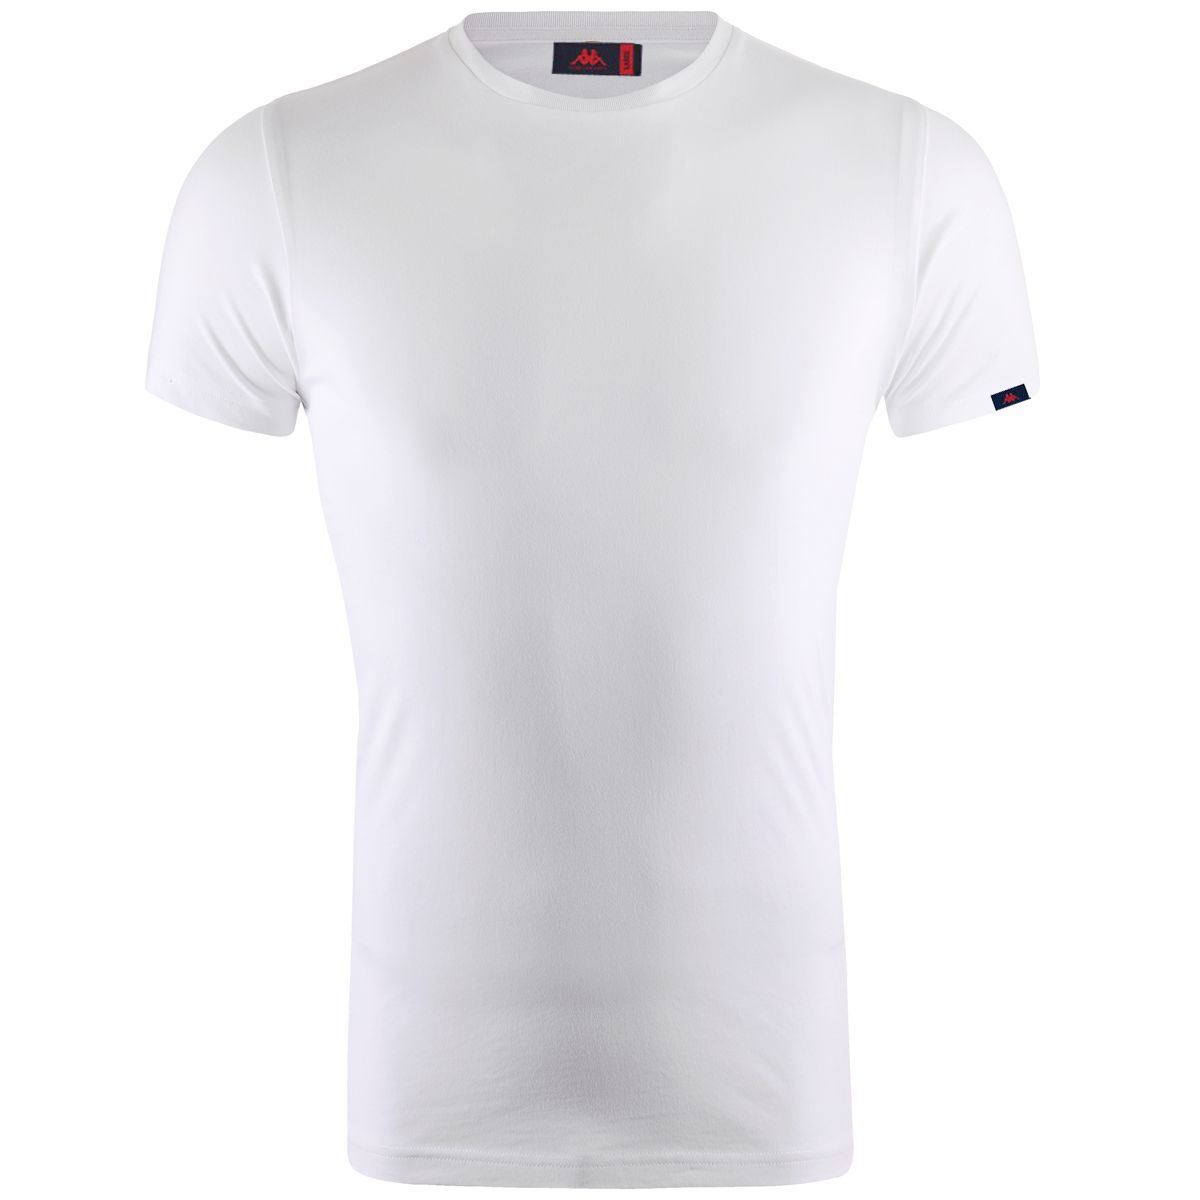 Robe di Kappa T-SHIRTS & TOP KERK Man T-Shirt